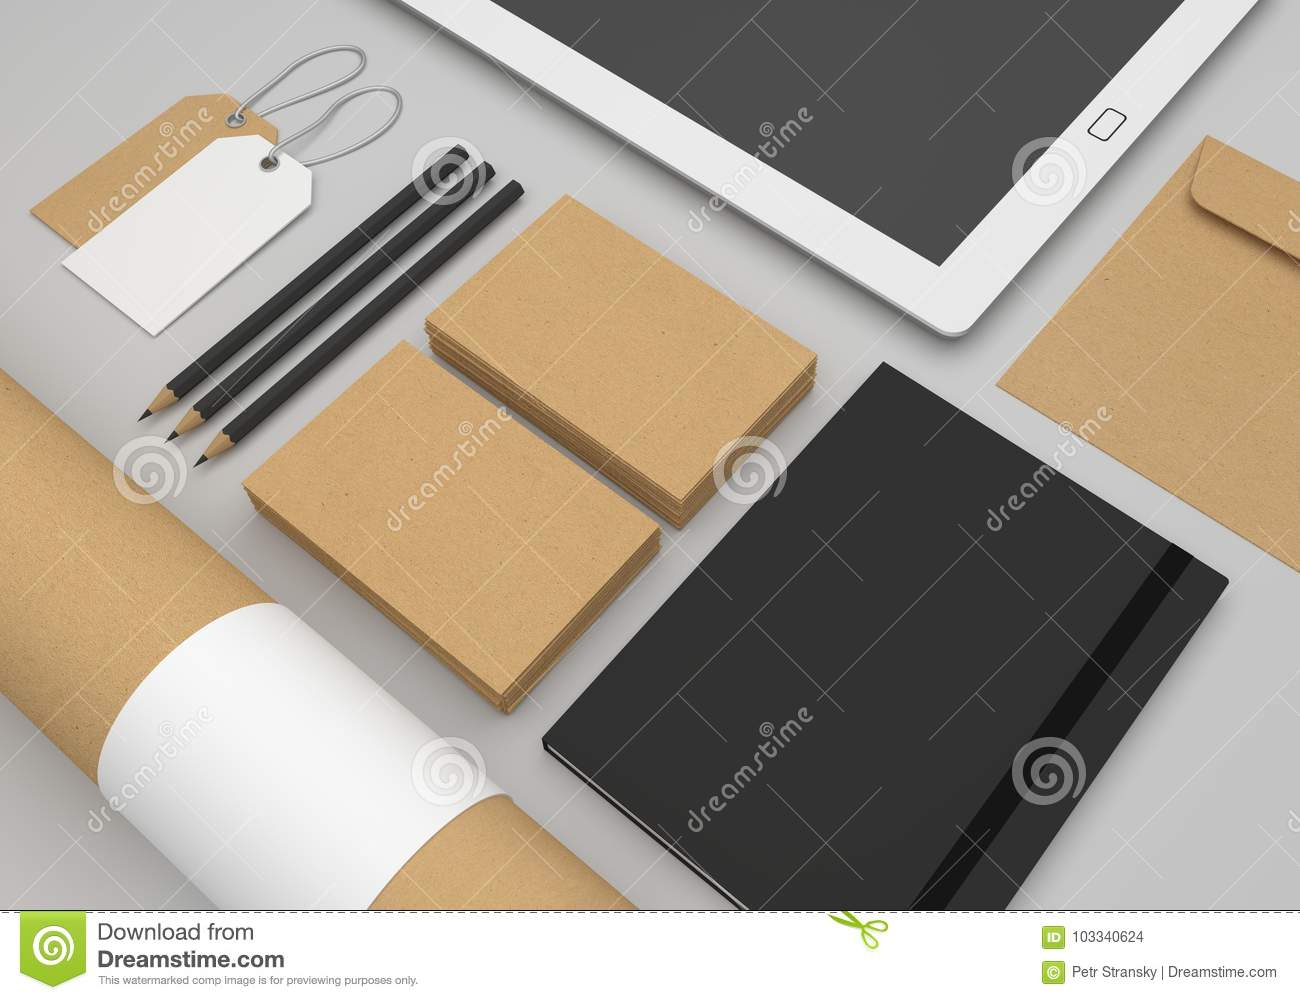 Stationery 3d illustration mockup with recycled paper business cards download stationery 3d illustration mockup with recycled paper business cards stock illustration illustration of reheart Choice Image